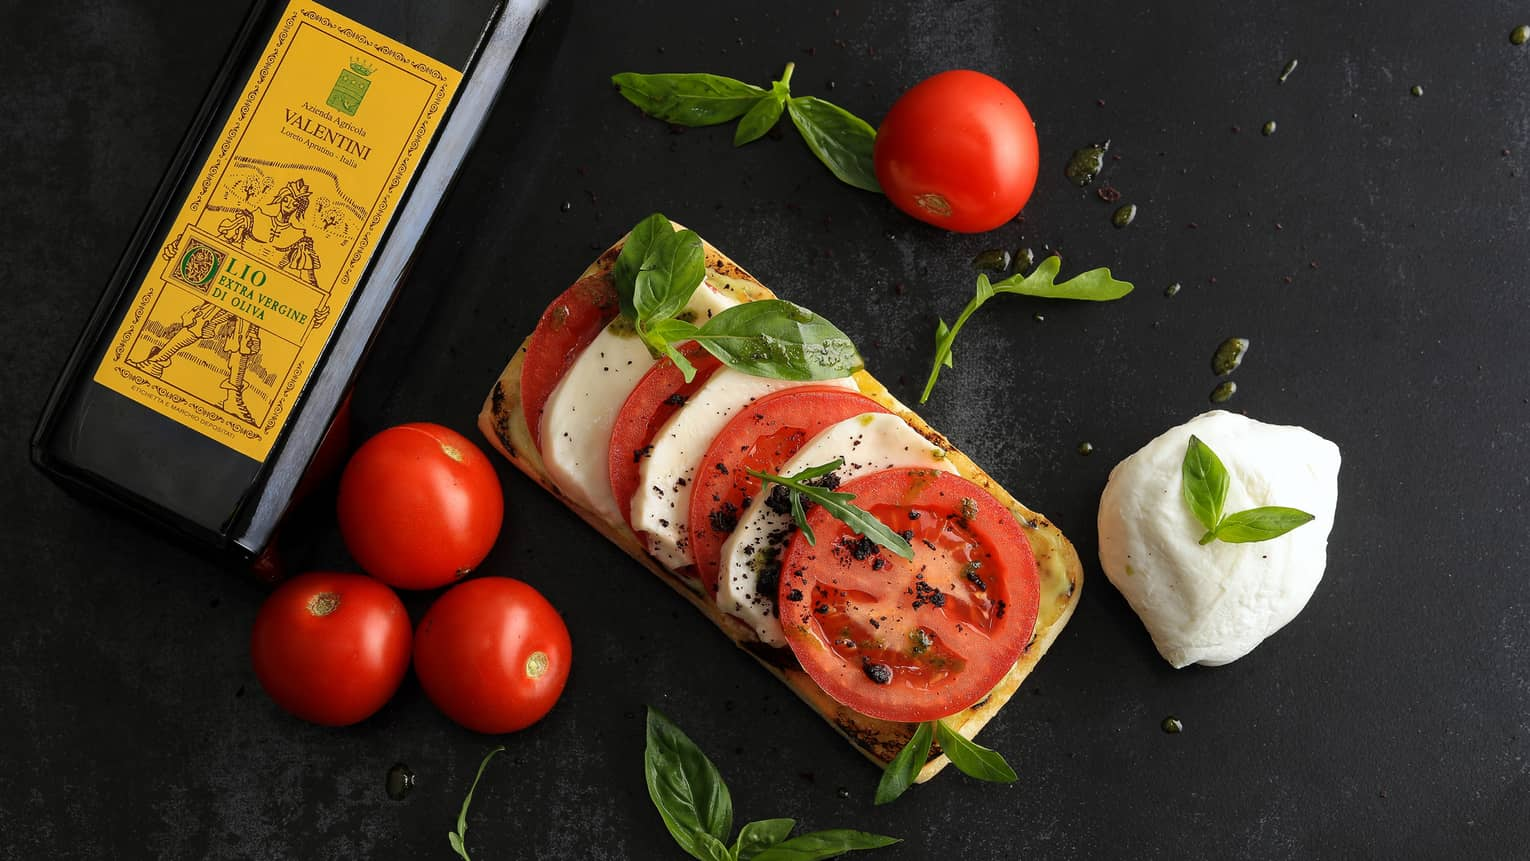 Open-face Tomato & Mozzarella Sandwich garnished with fresh basil, on counter with whole tomatoes